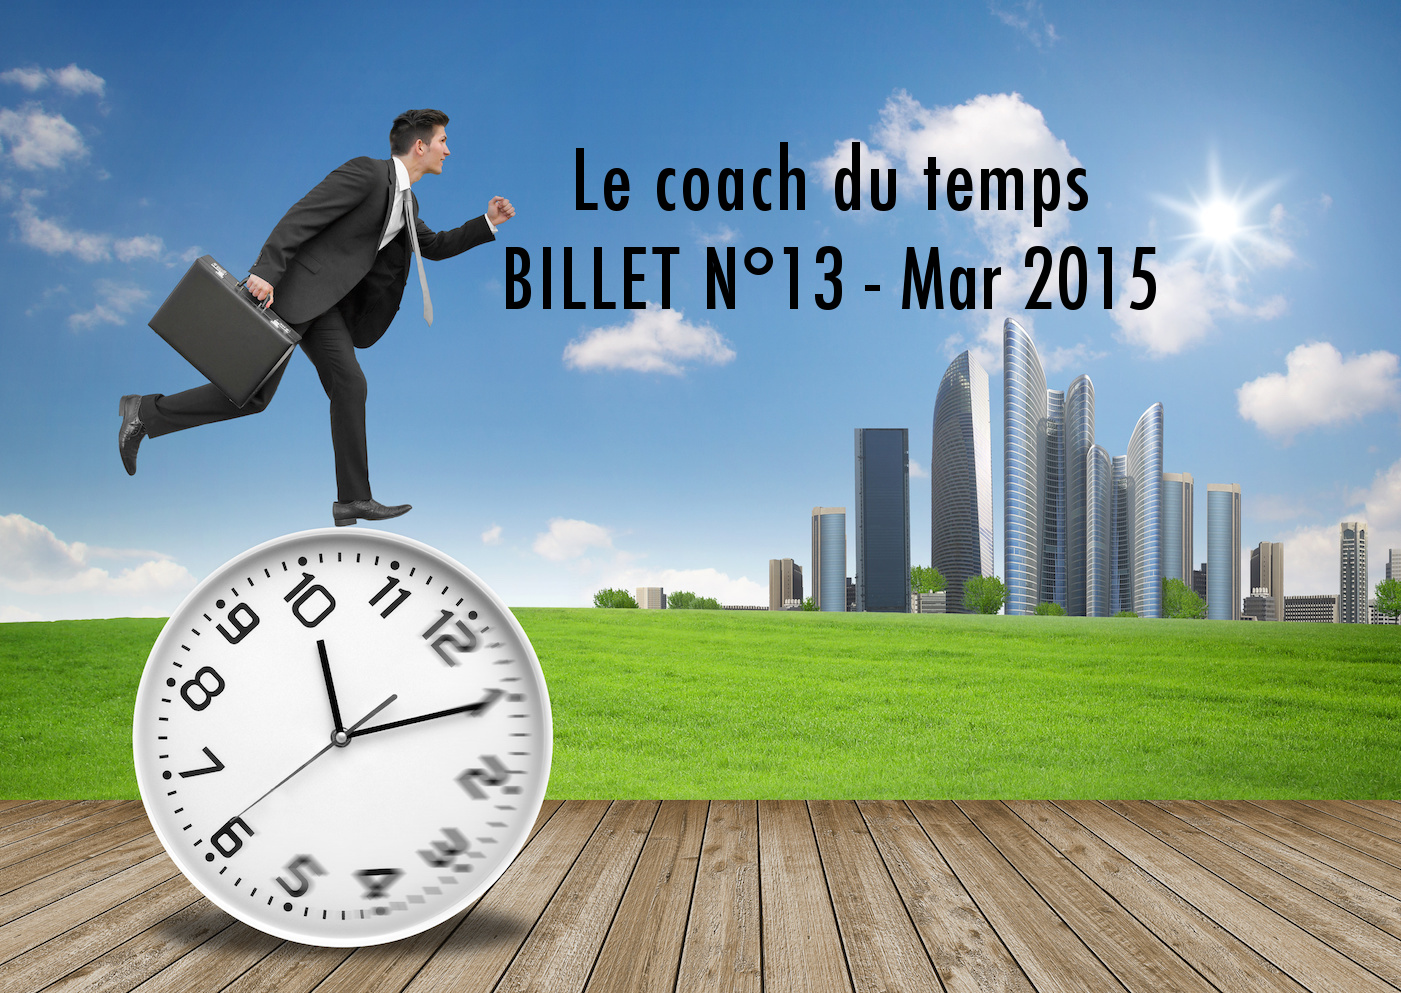 billet-image-mar15